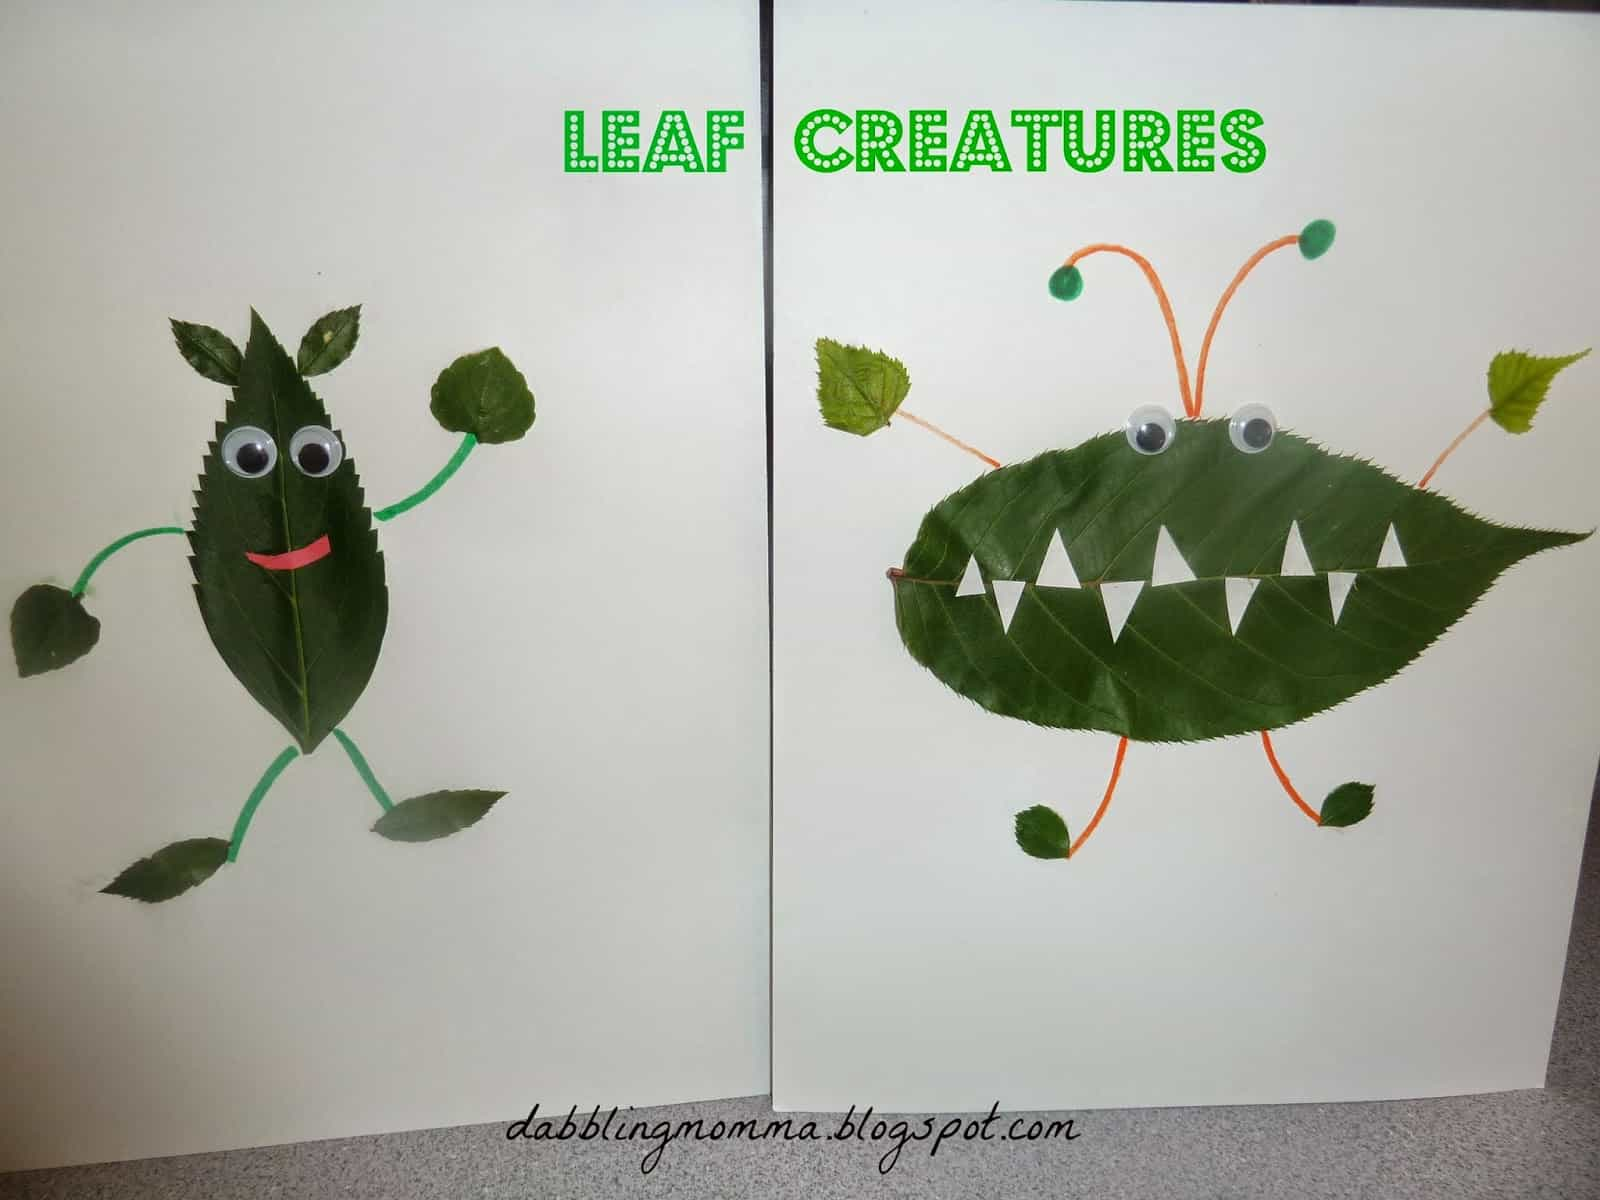 Funny leaf creatures